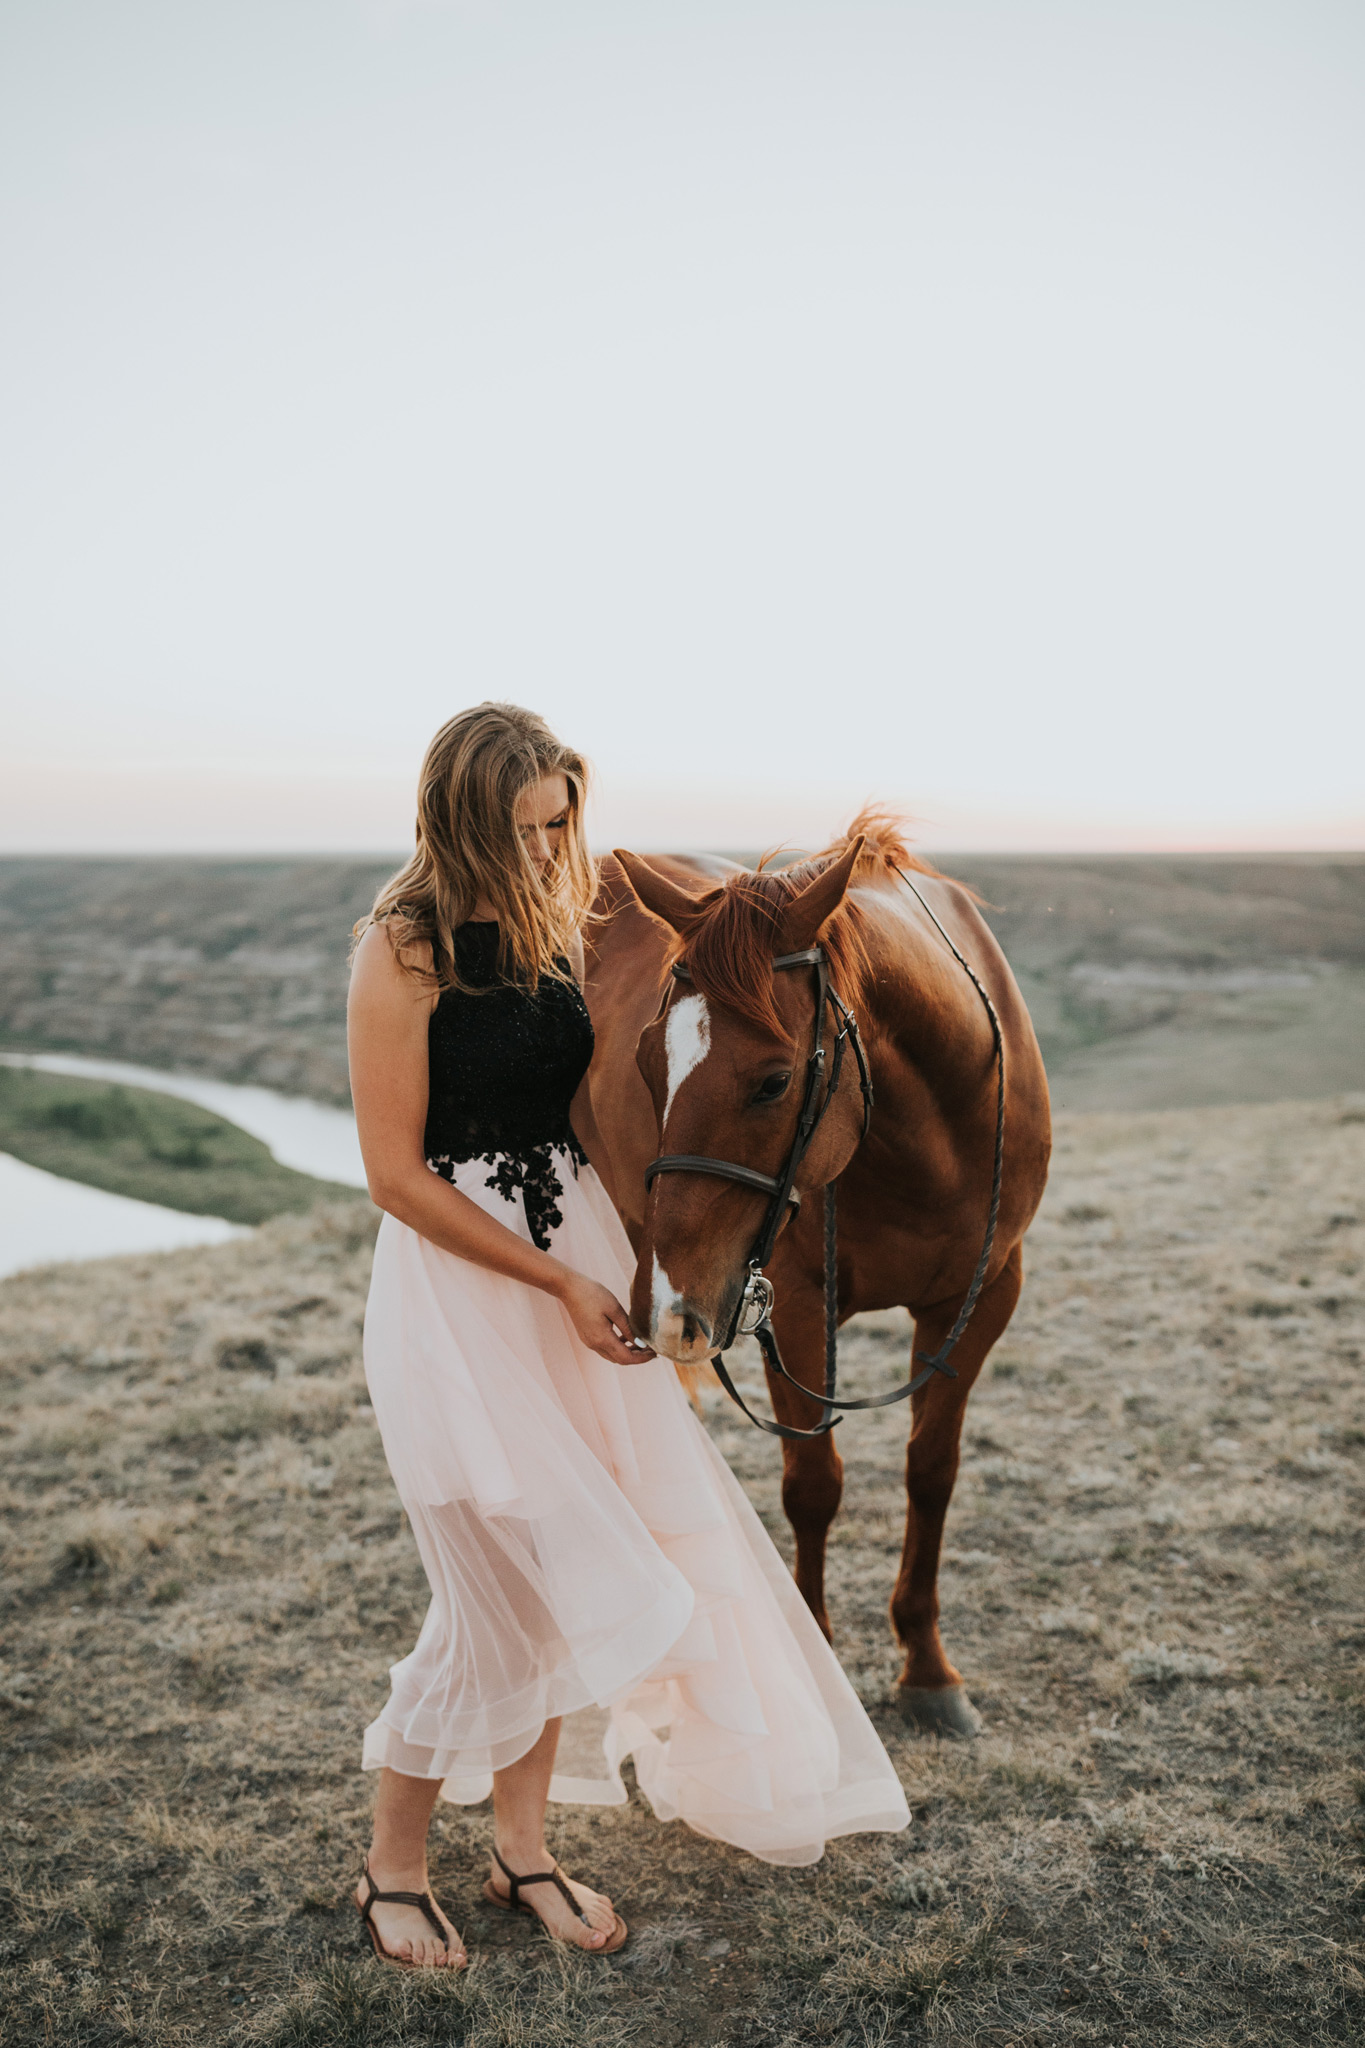 grad girl petting horse in prom dress